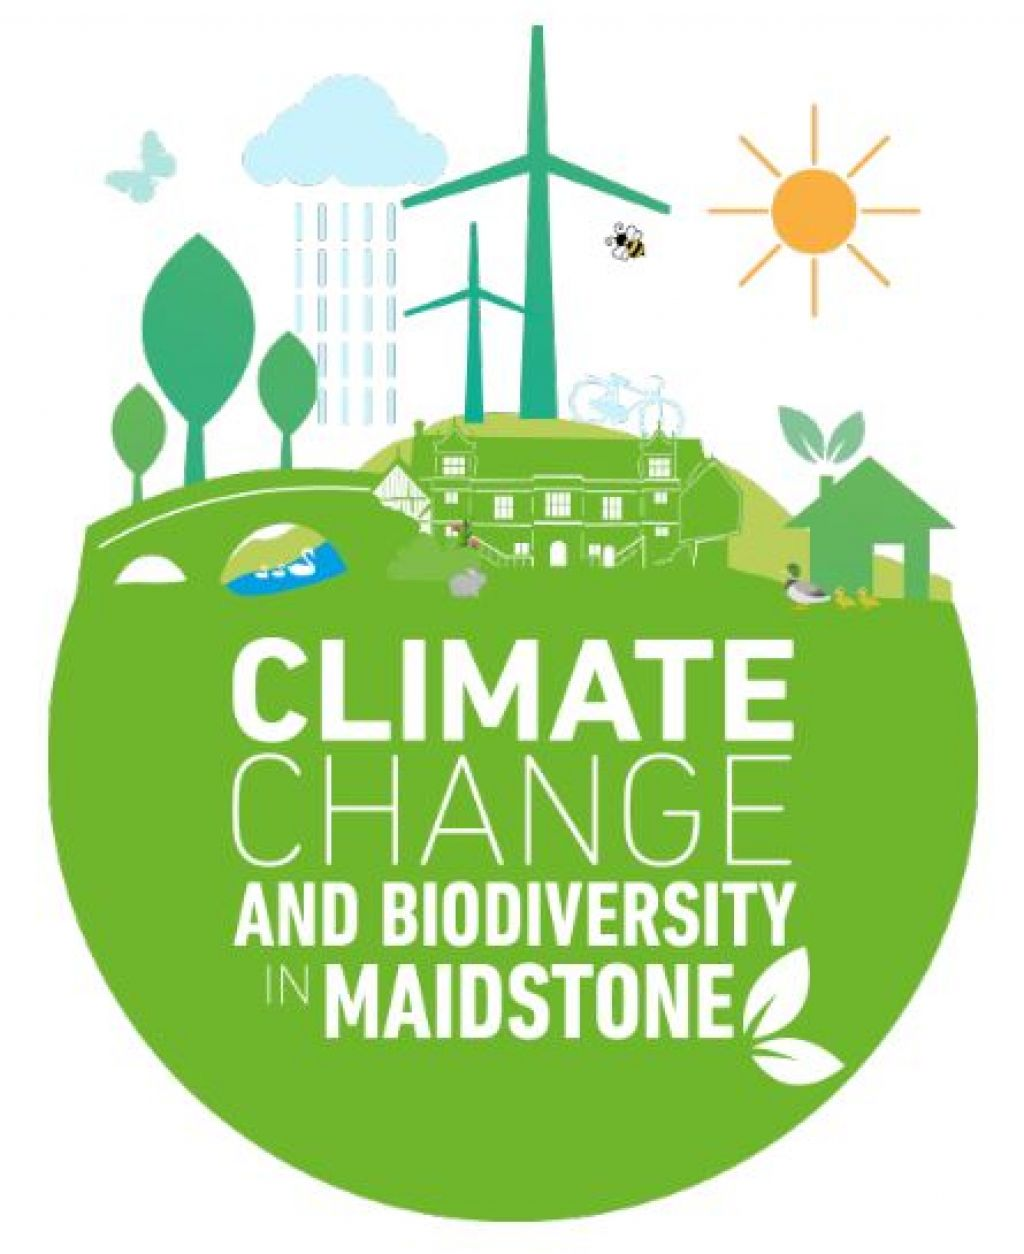 Maidstone Council launches Biodiversity and Climate Change Action Plan image